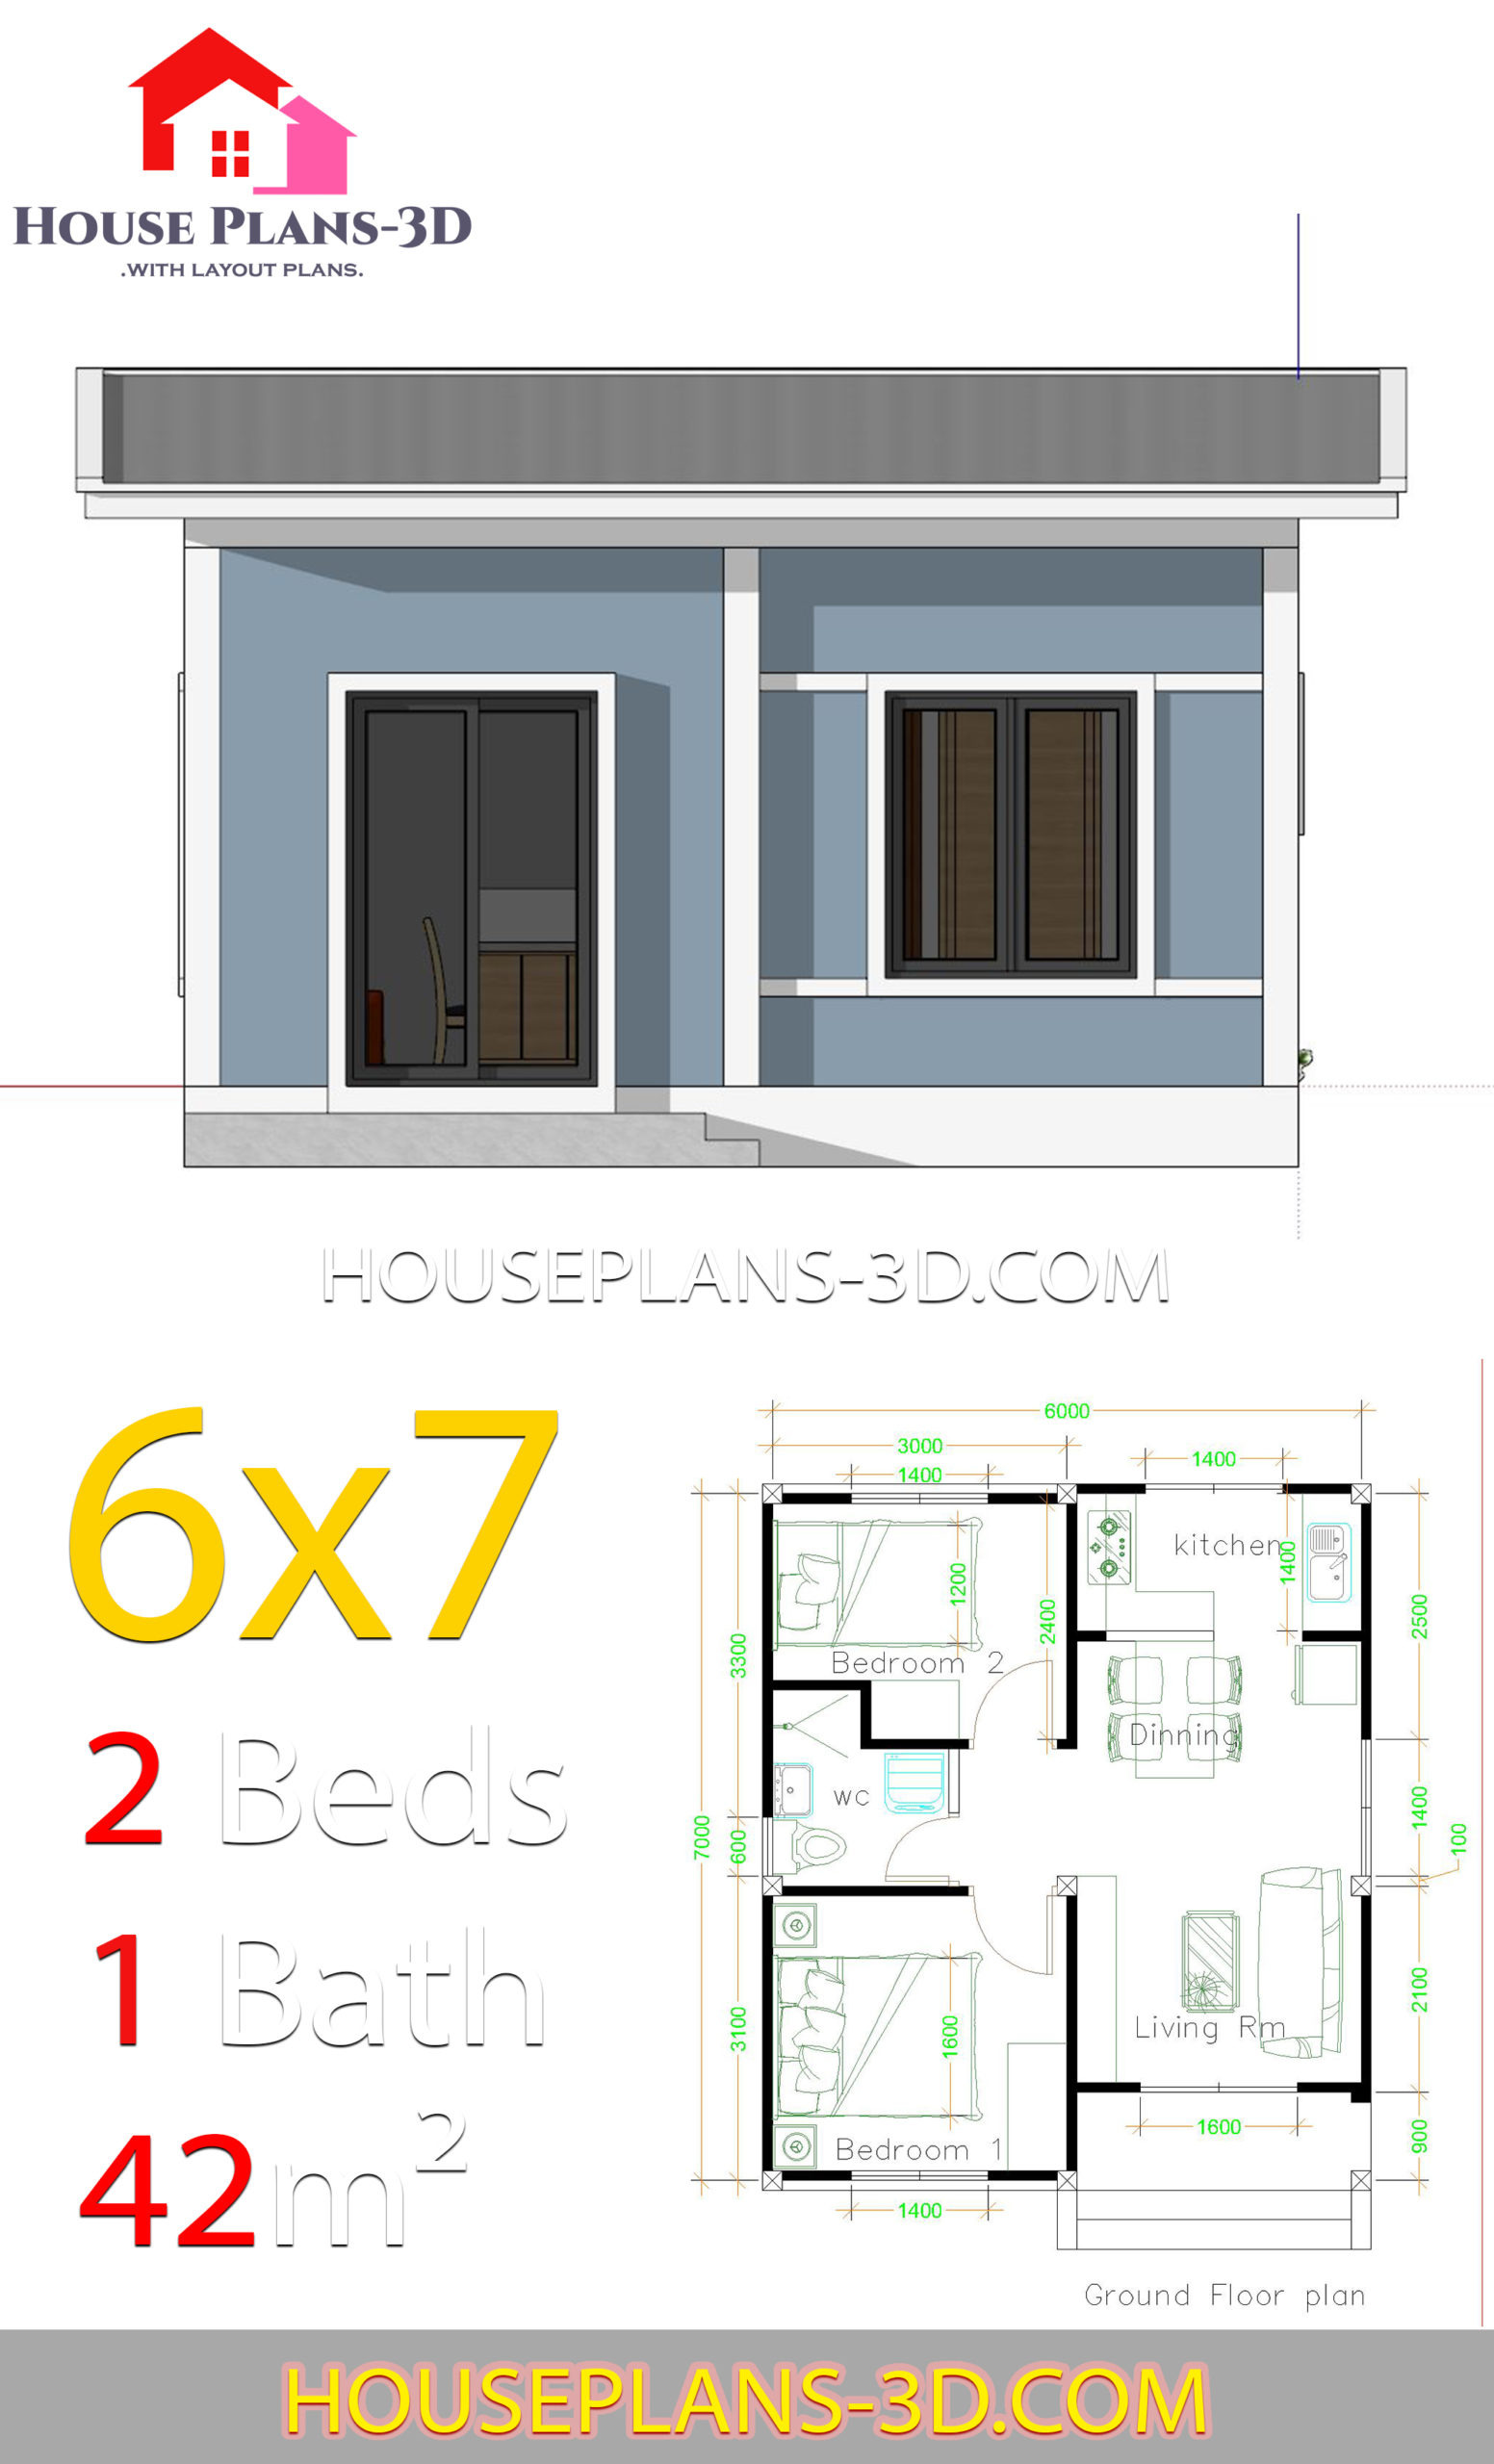 Basic House Plans Free Awesome Simple House Plans 6x7 with 2 Bedrooms Shed Roof House